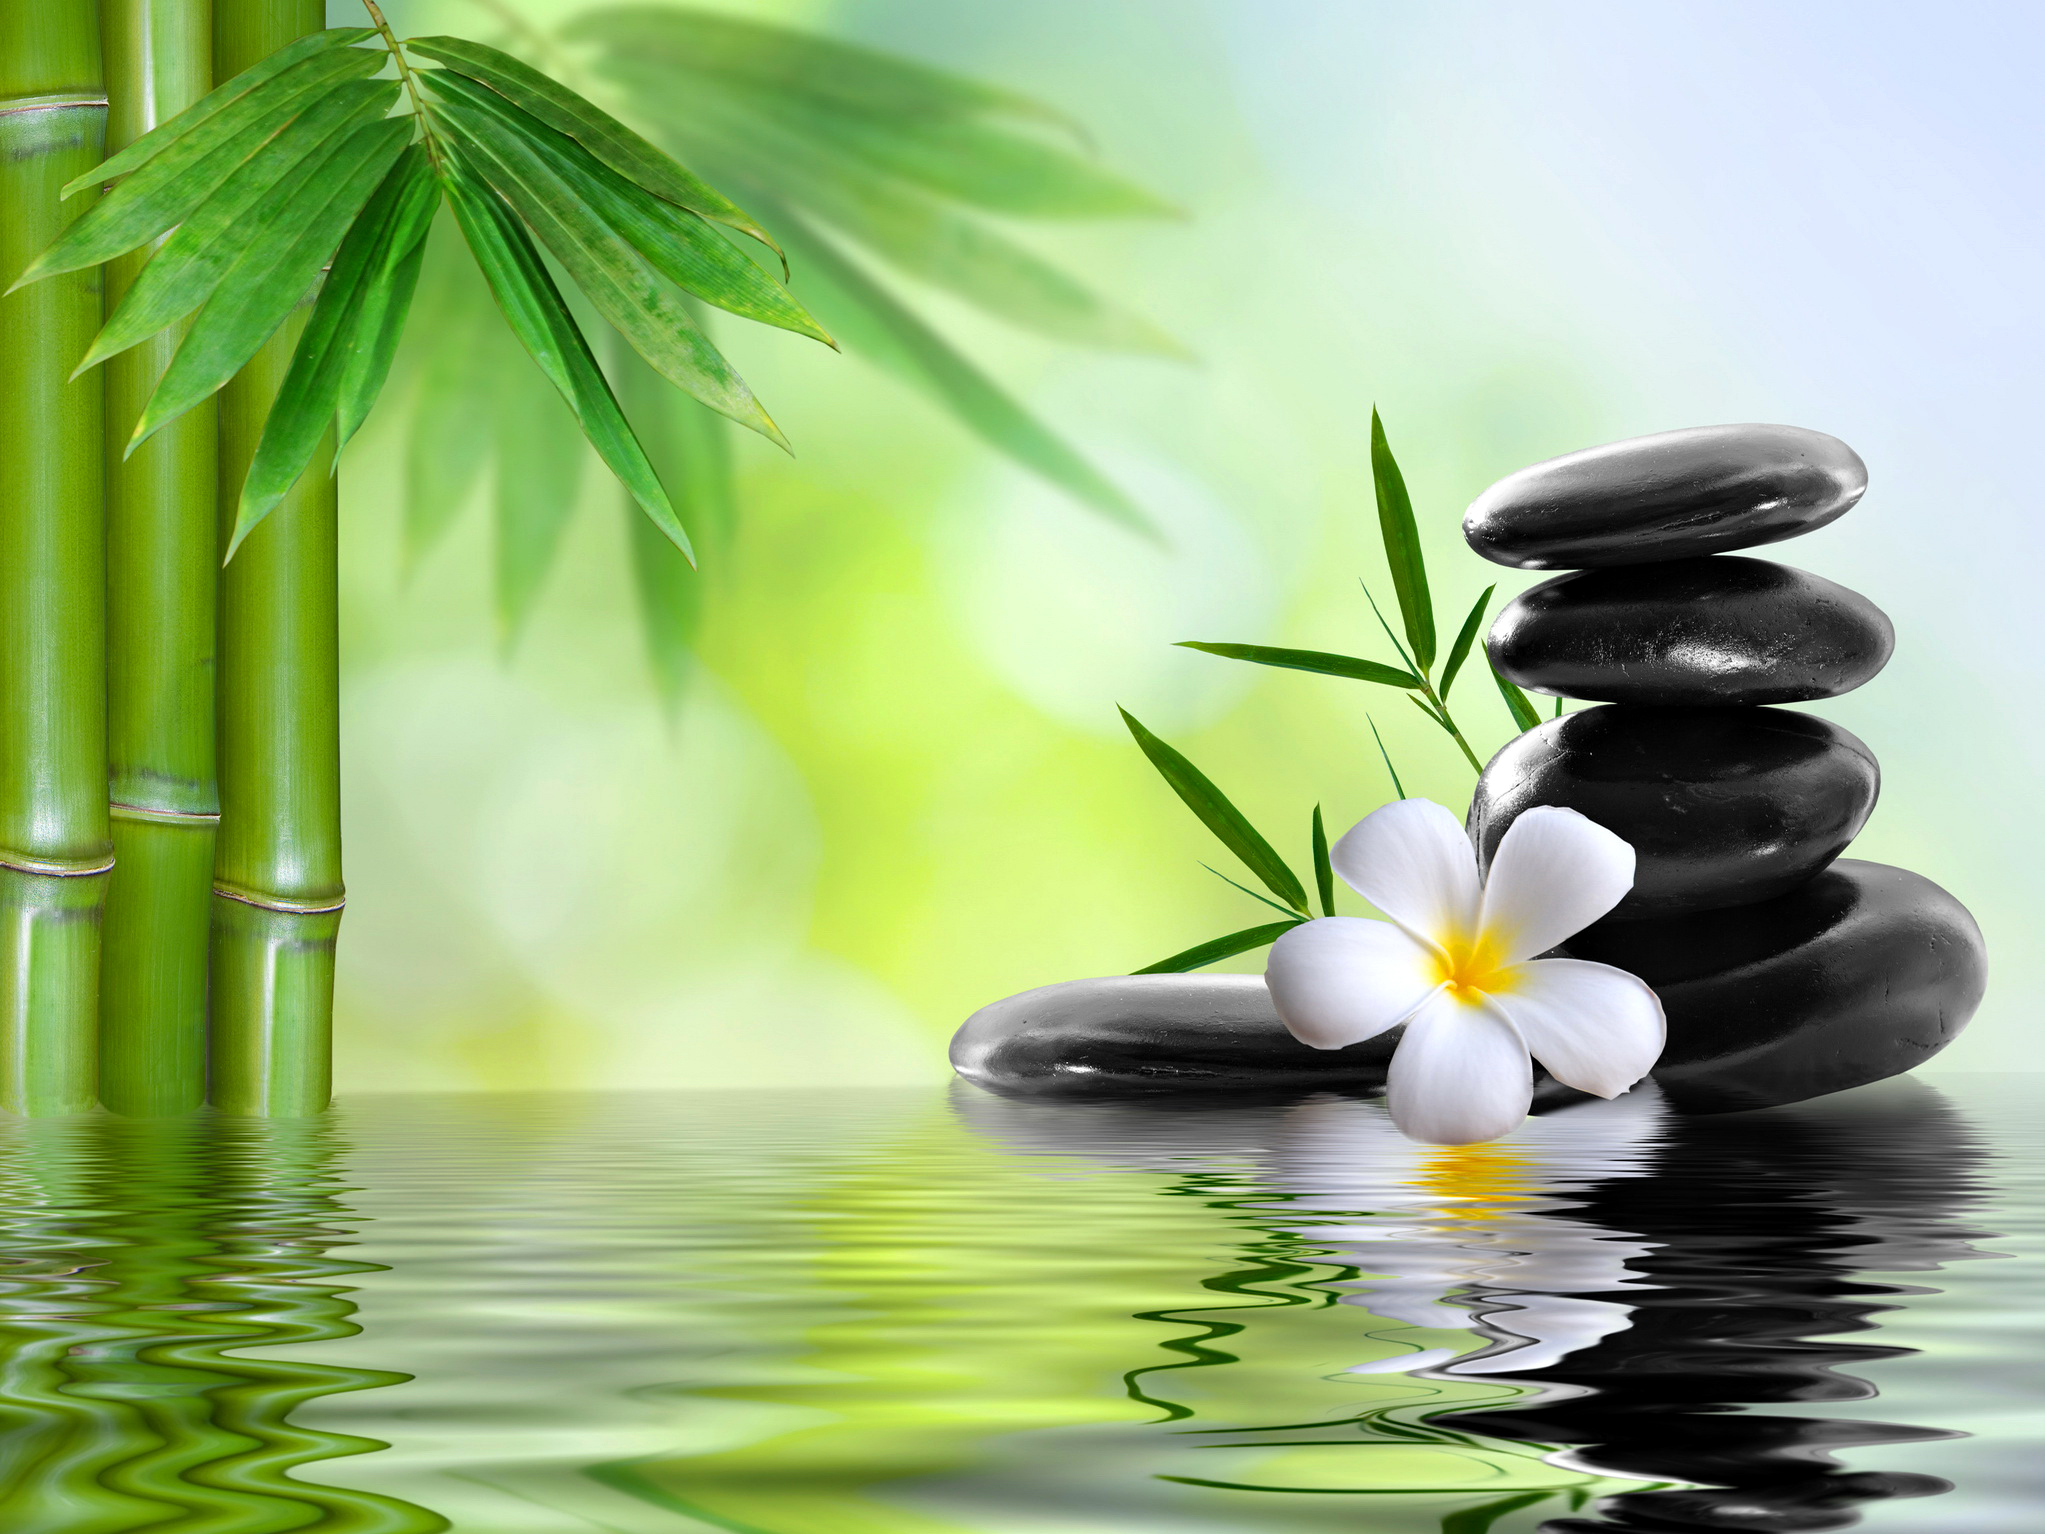 Wallpaper spa spa stones flower bamboo water wallpapers 2045x1534